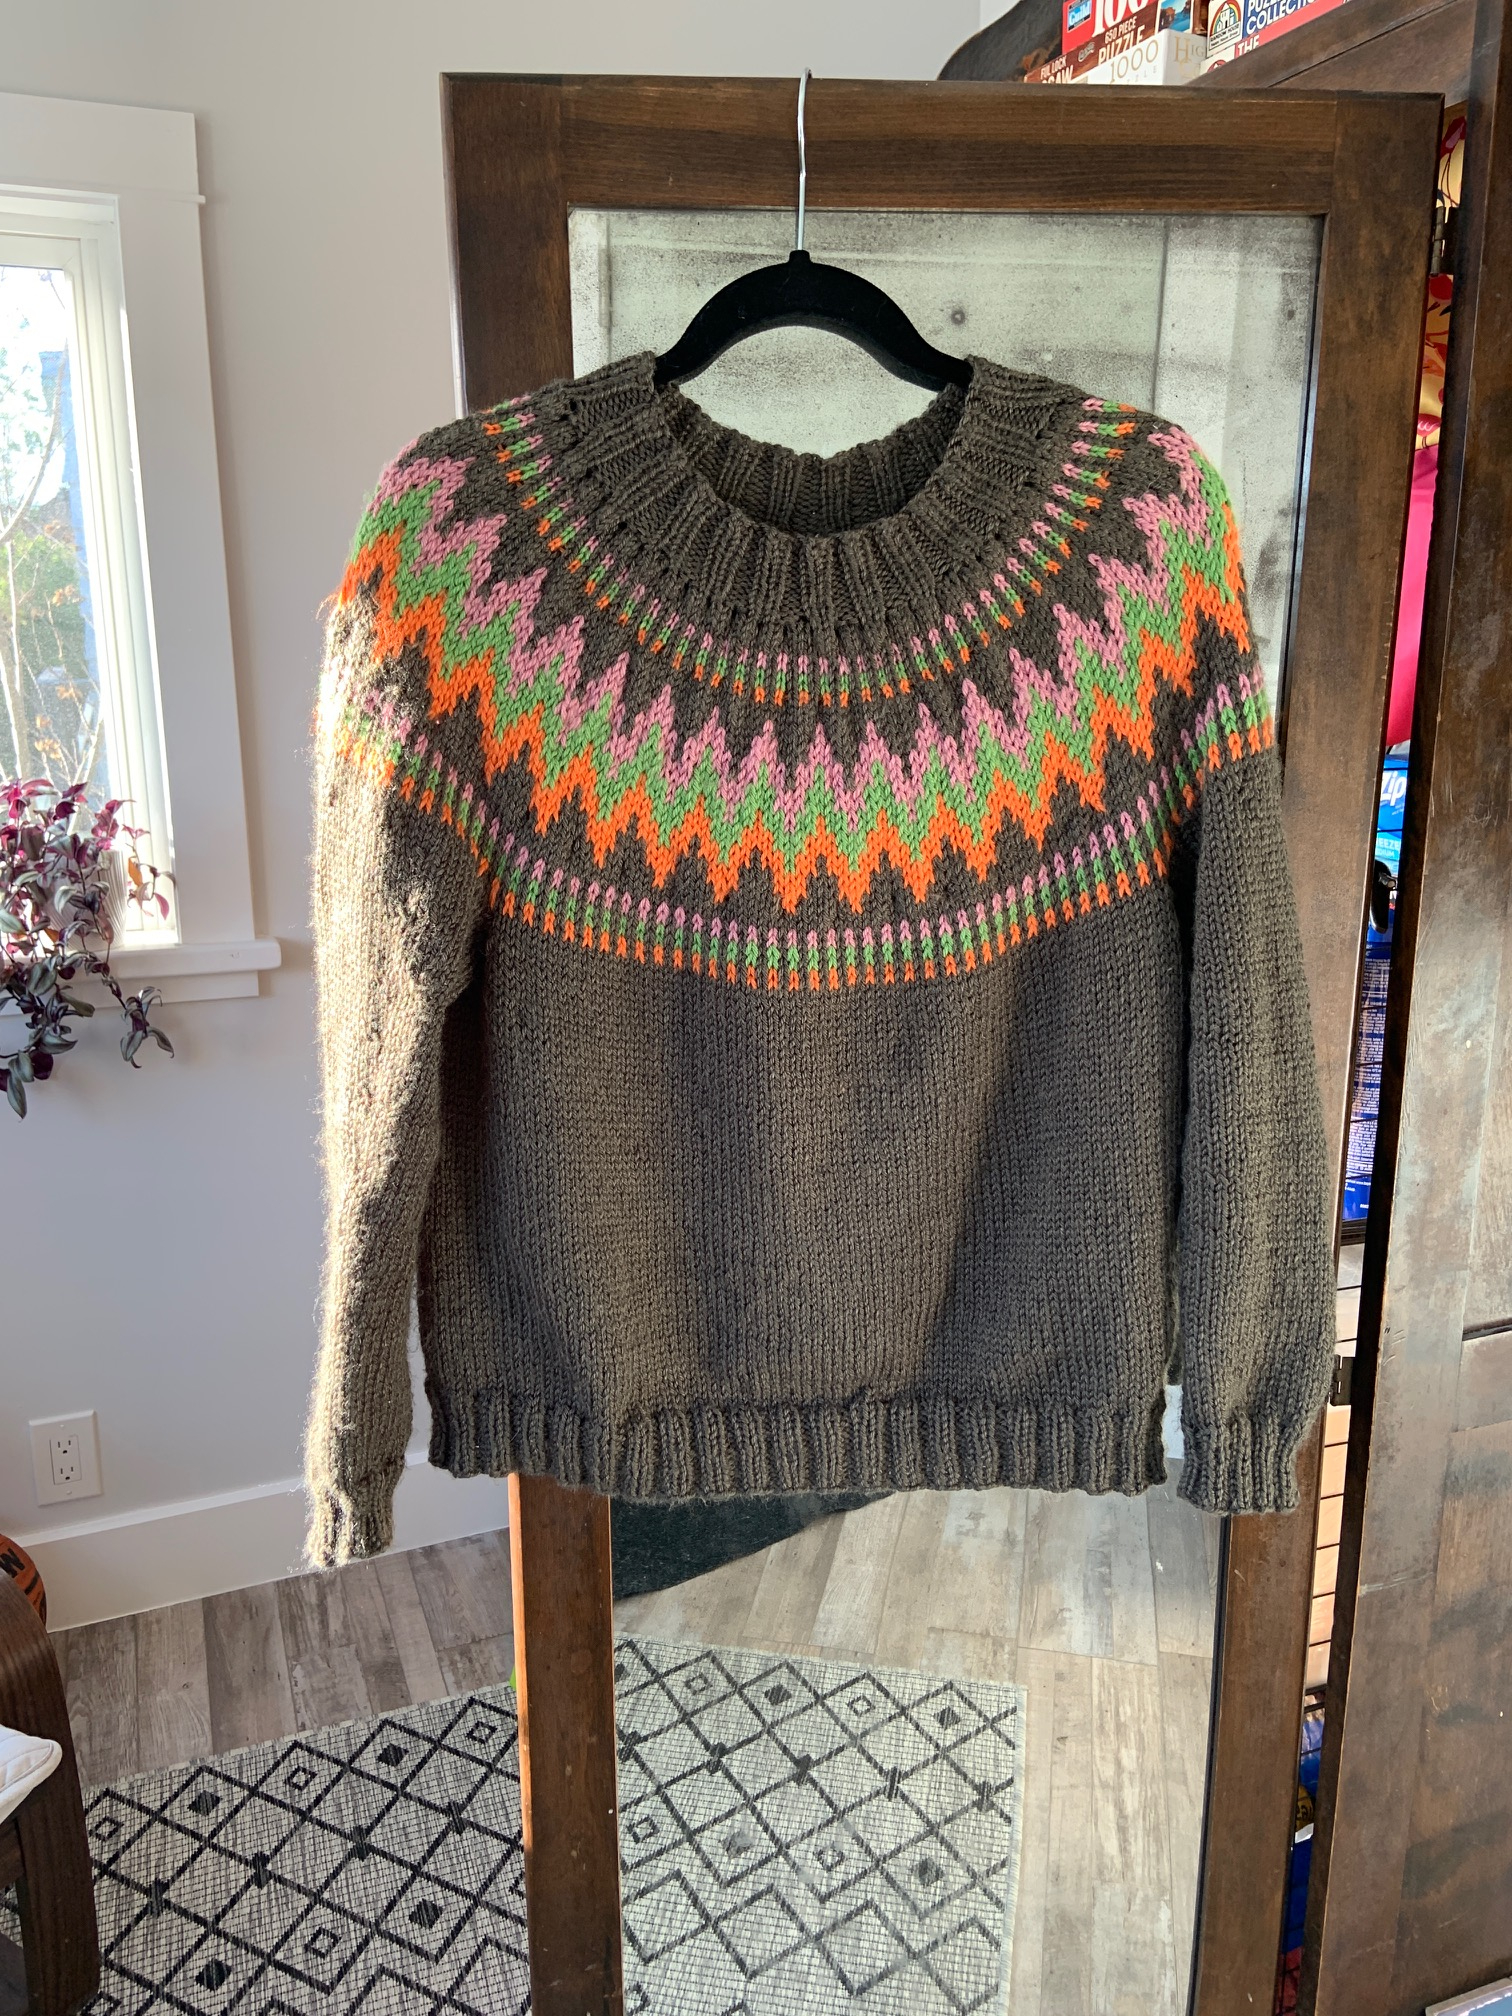 The Throwover Sweater